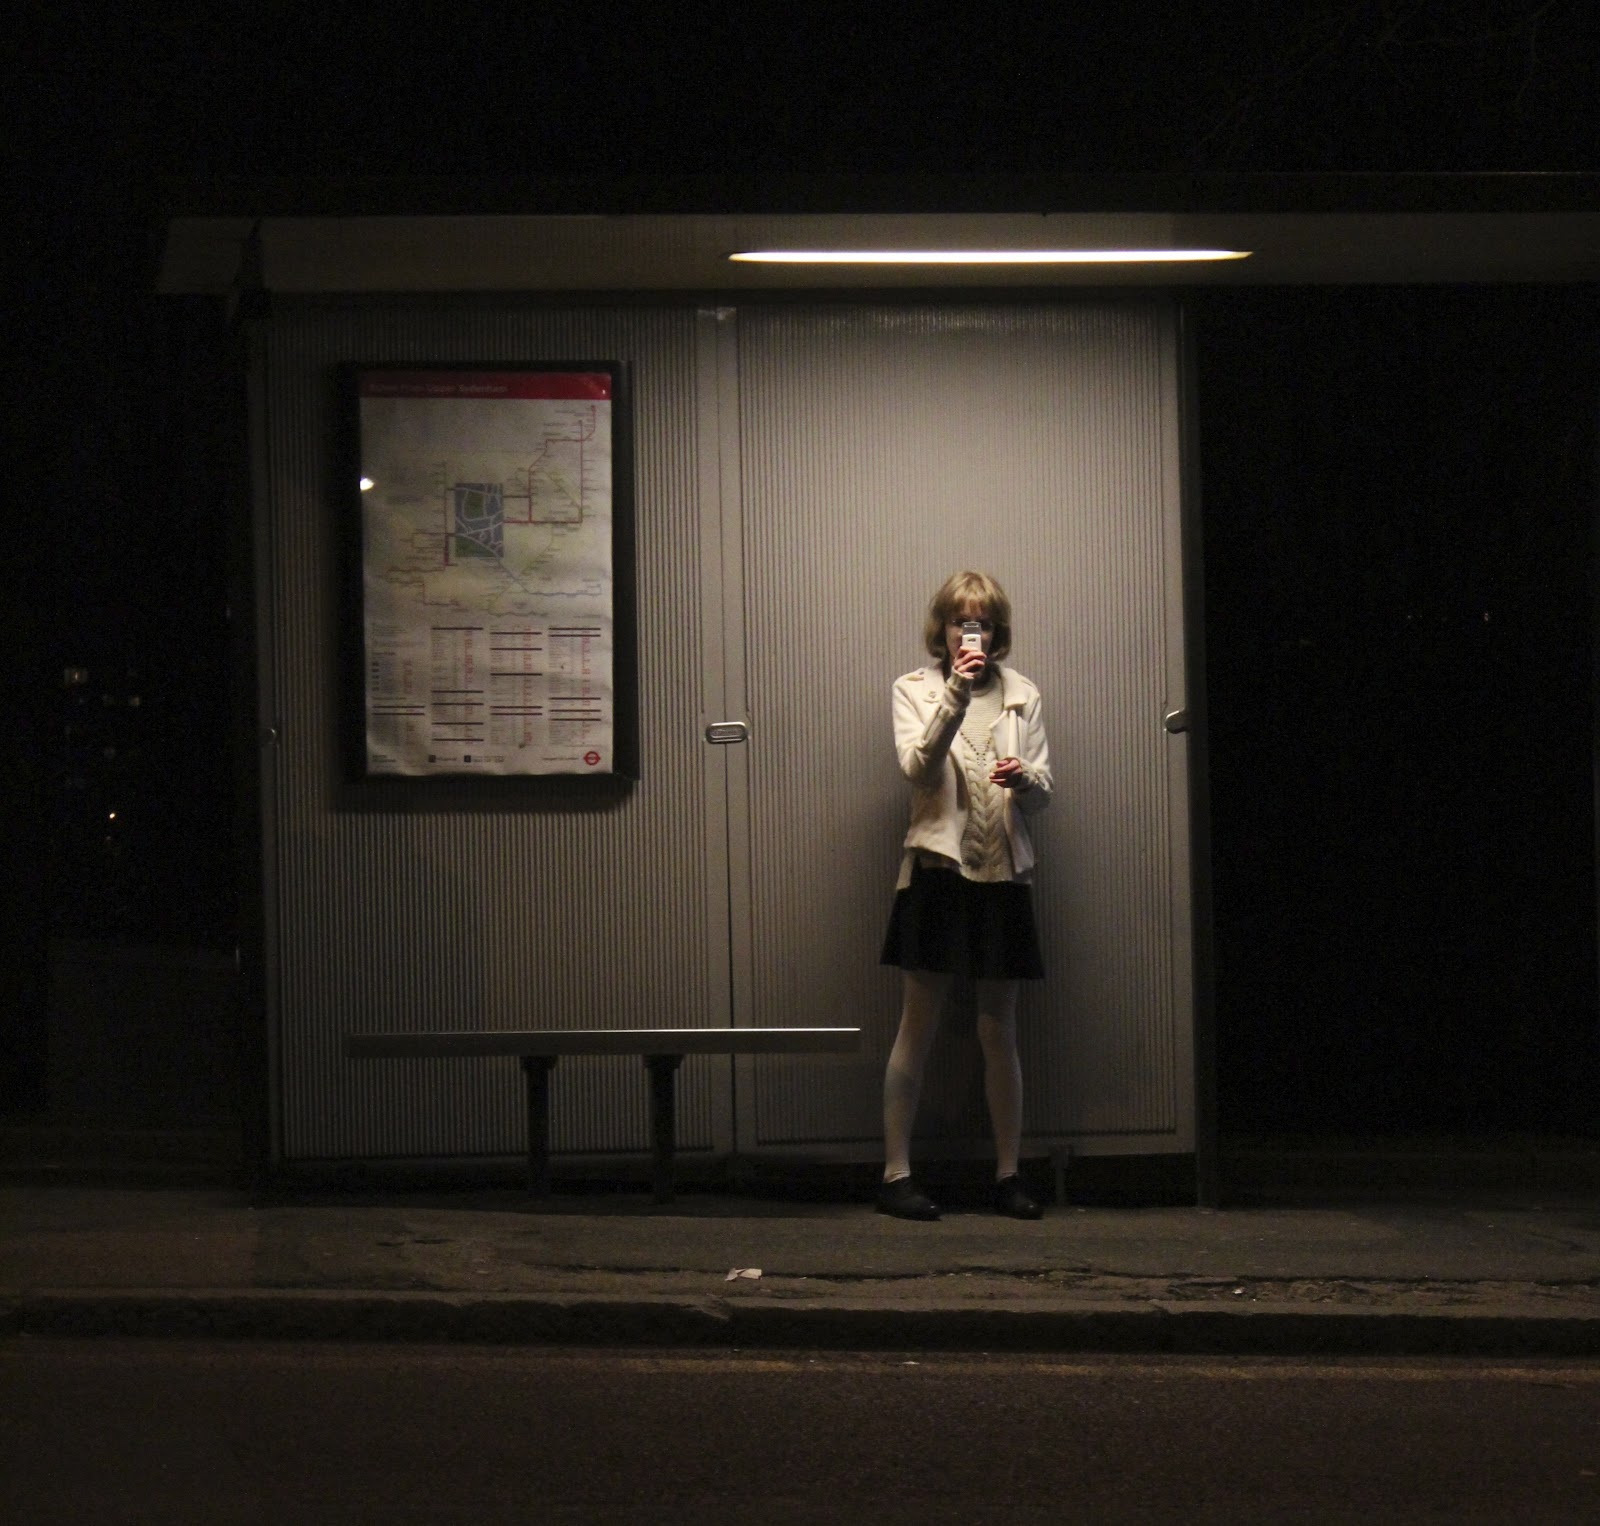 A woman is standing at a bus stop. She has her phone in front of her face to take a picture with it.